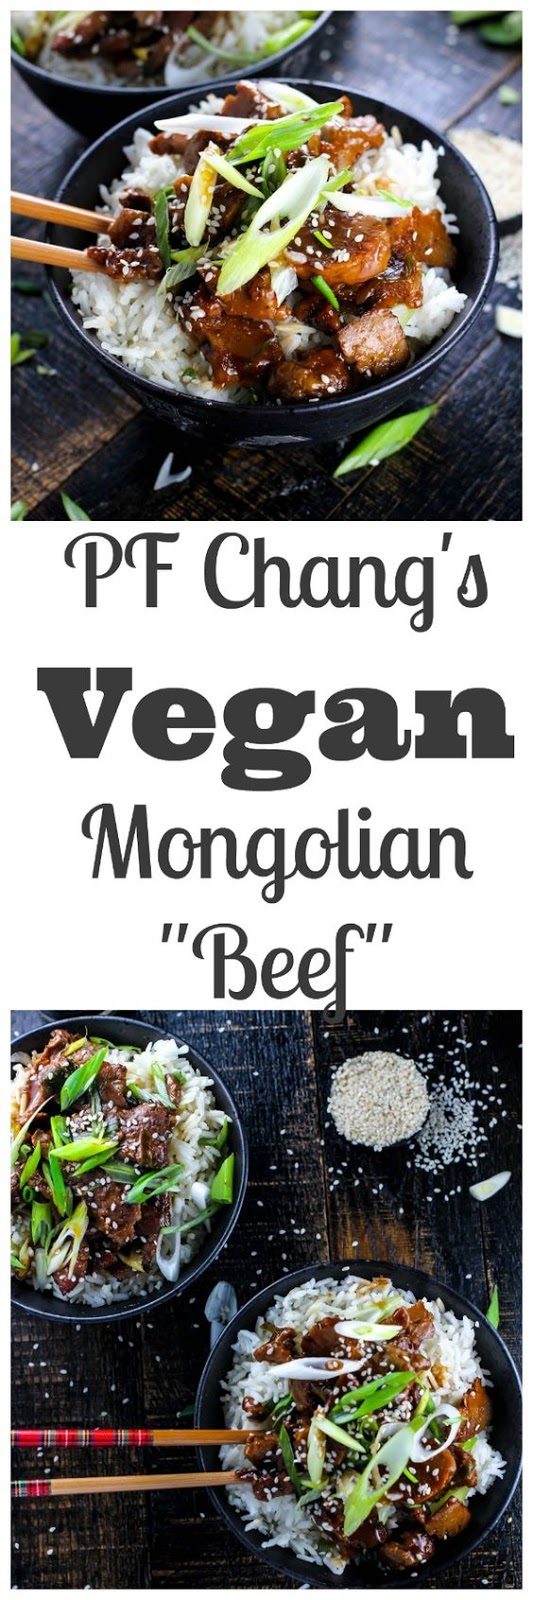 """★★★★☆ 7561 ratings 